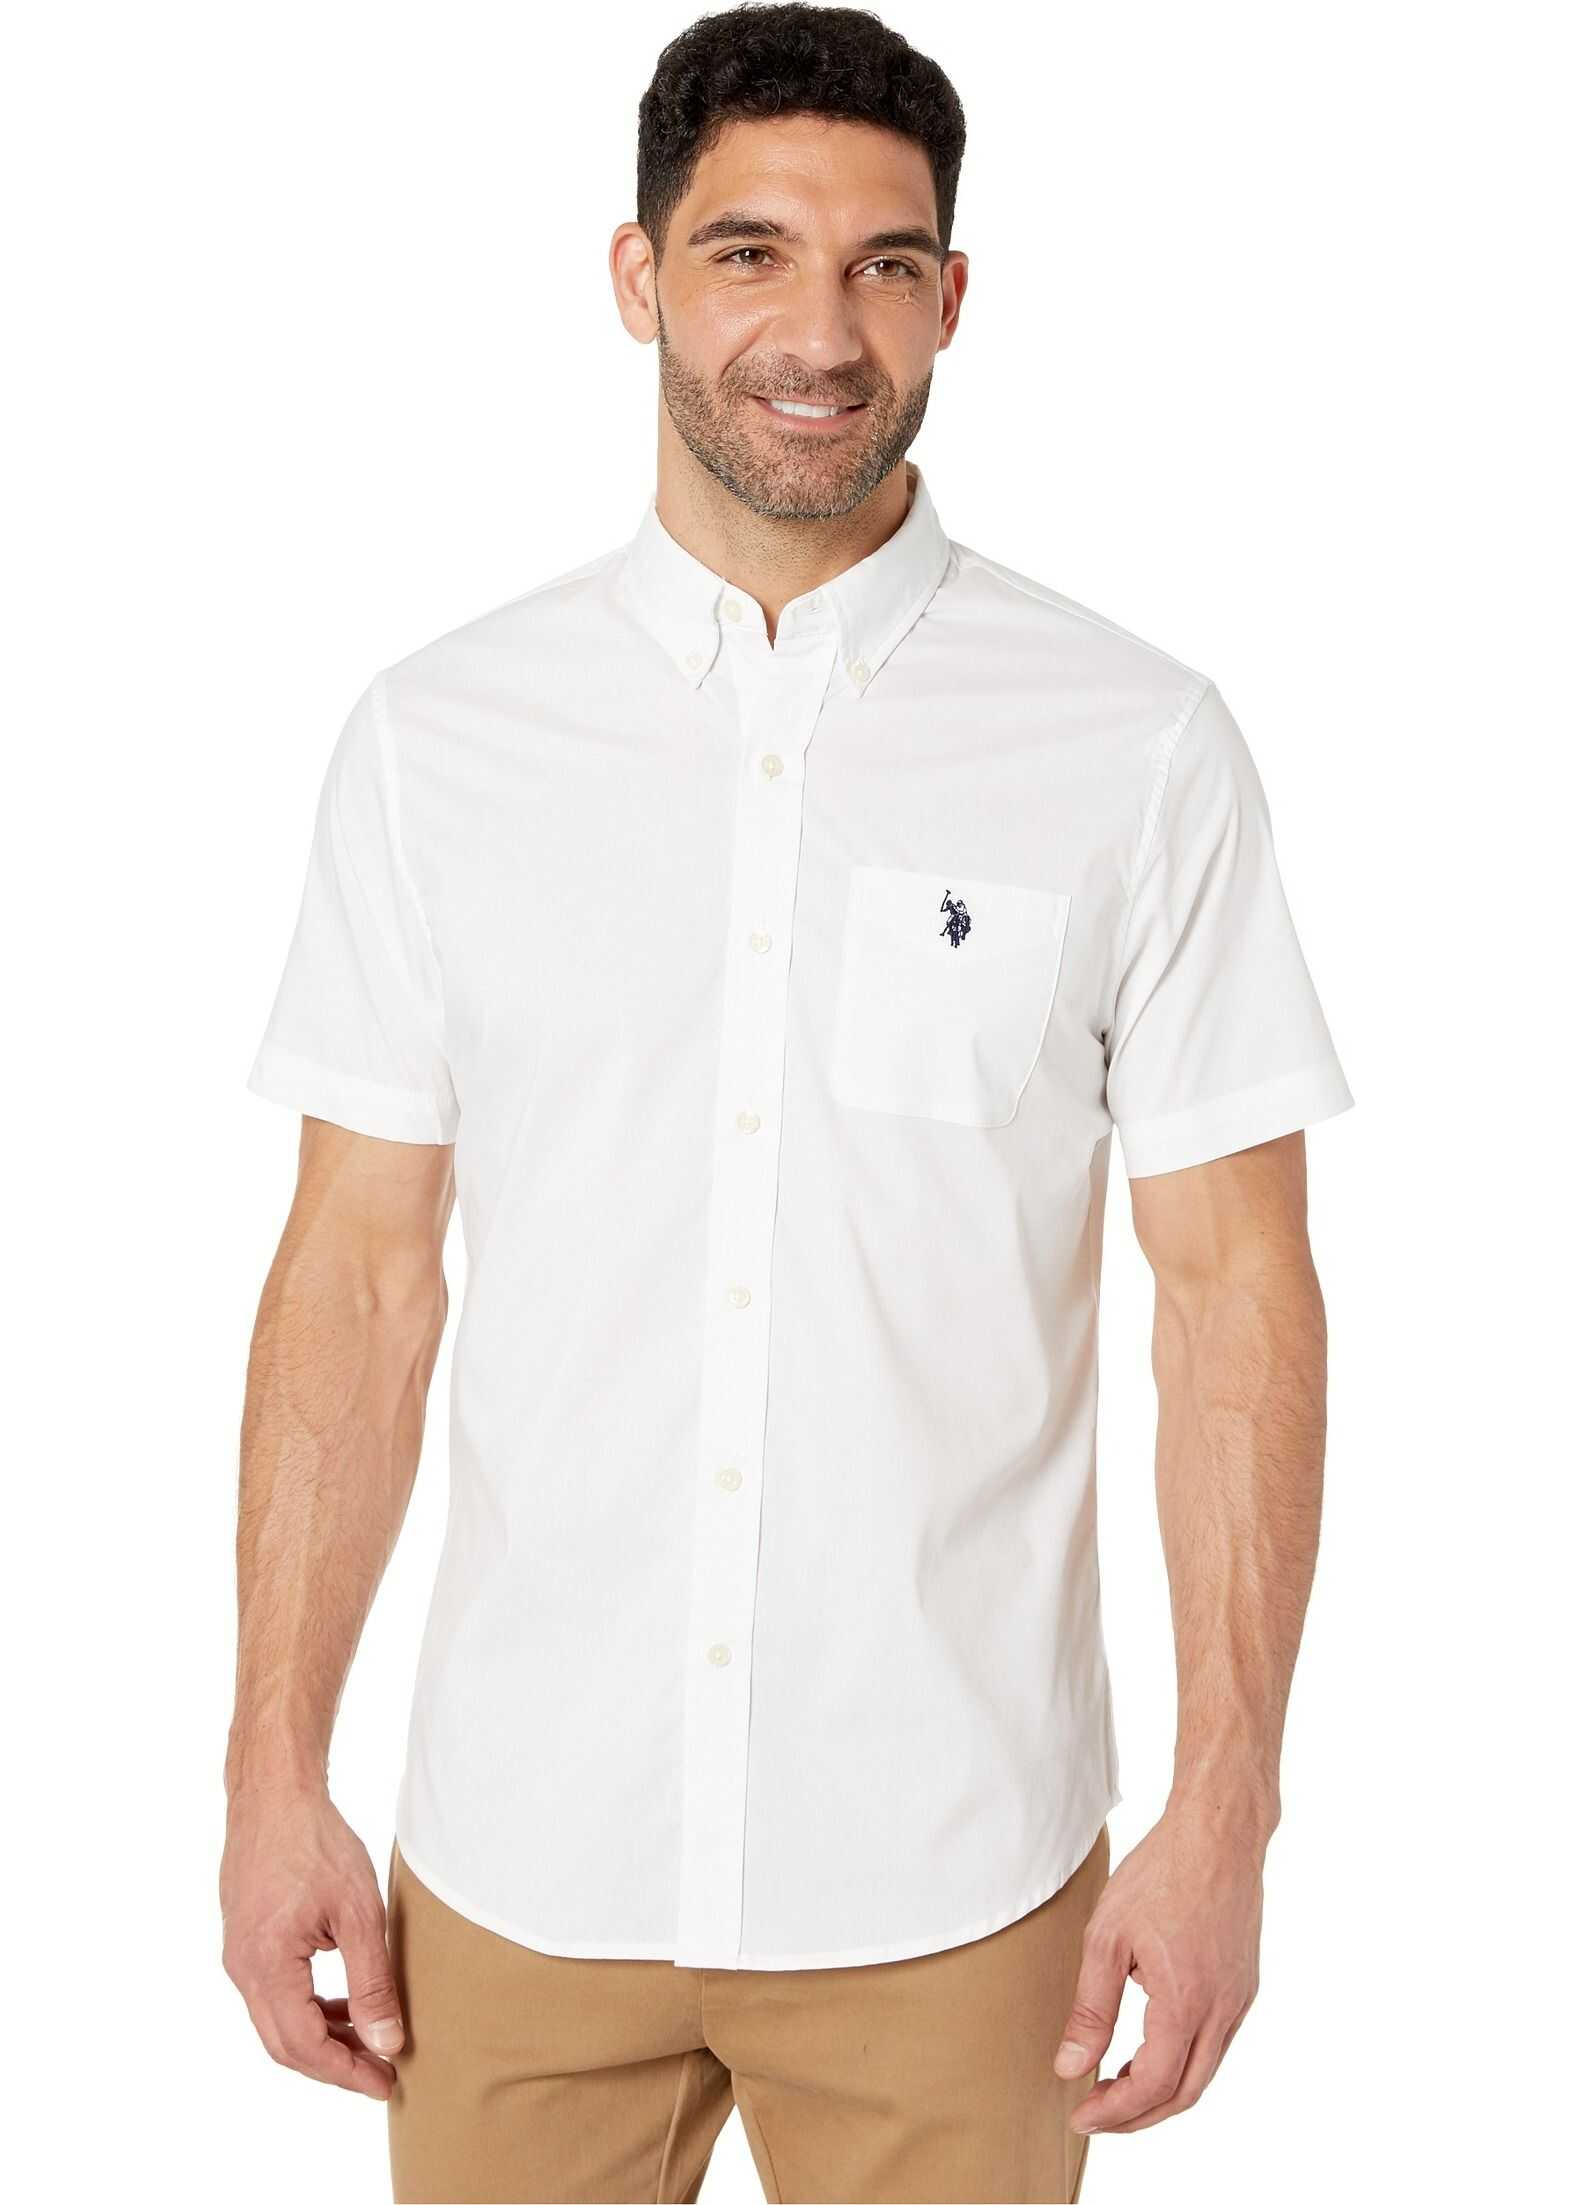 U.S. POLO ASSN. Solid Stretch Button Down Optic White